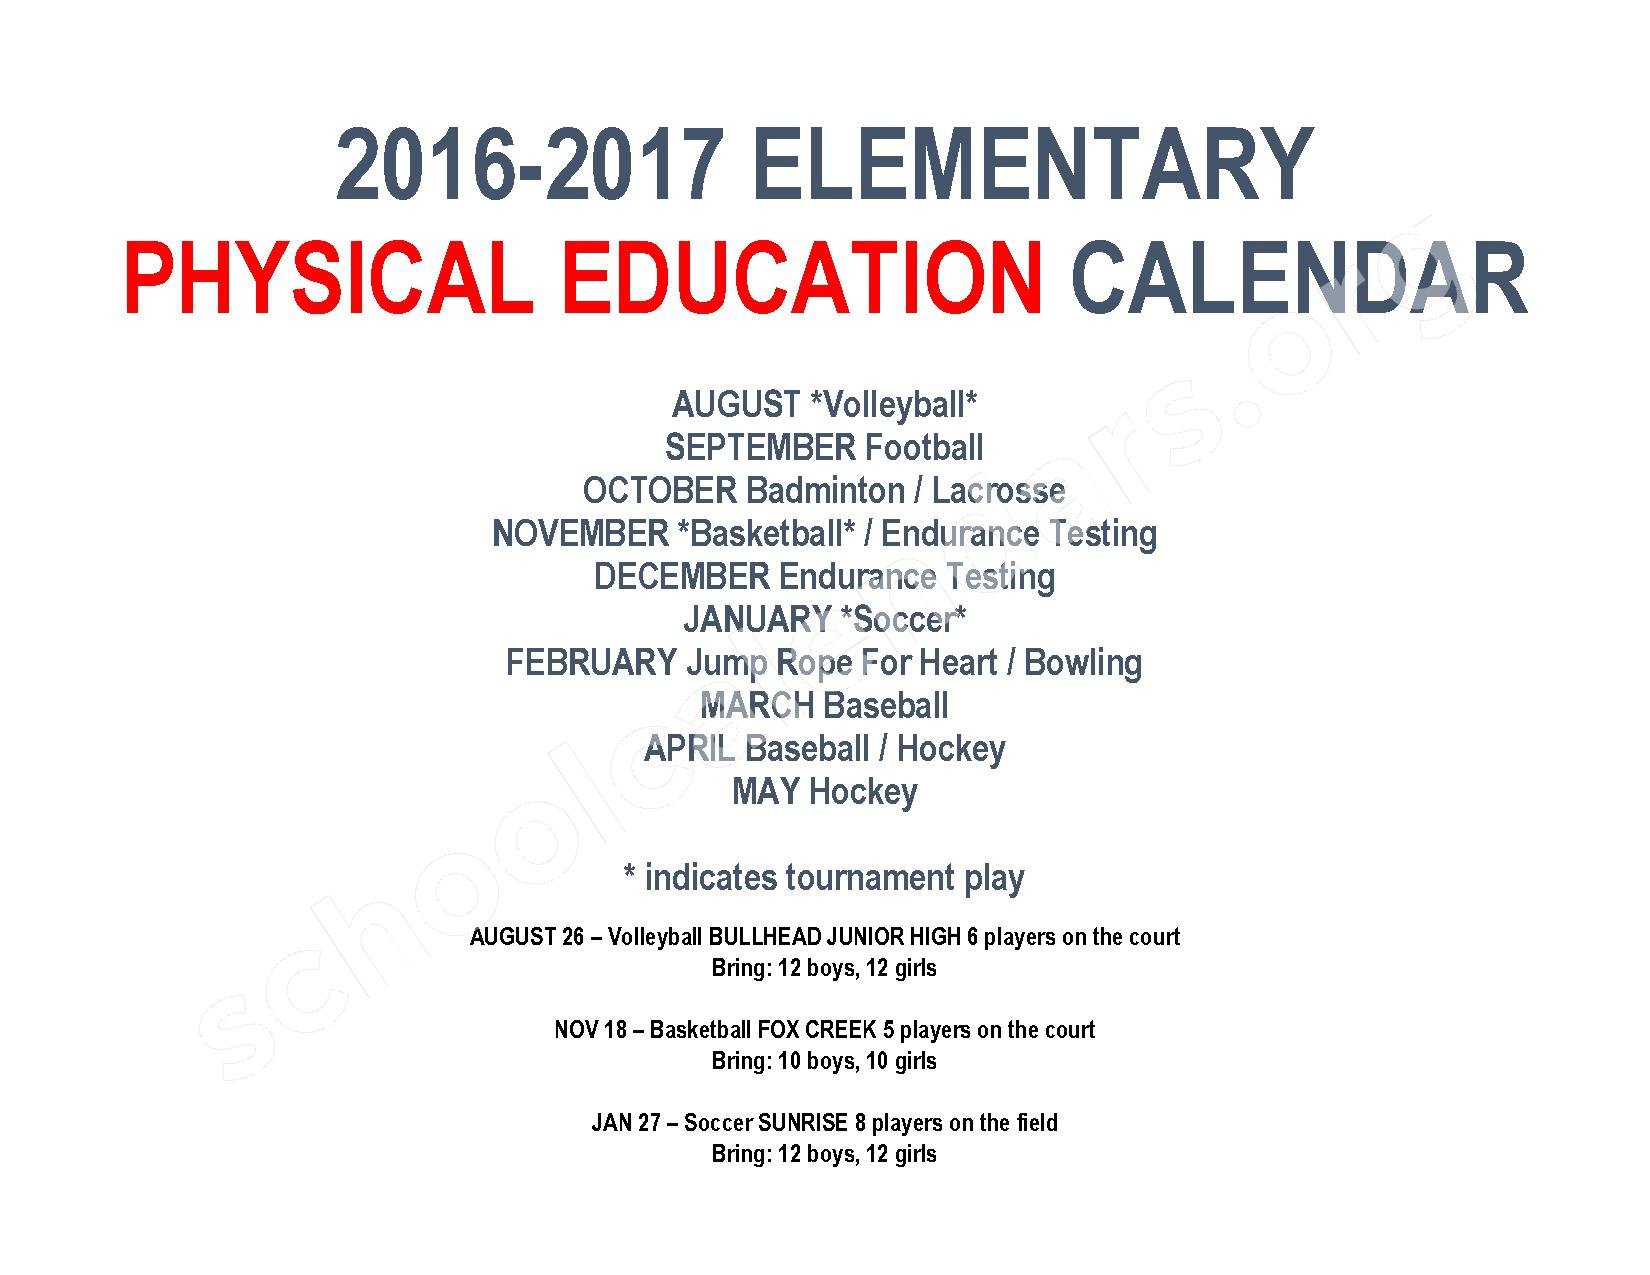 2016 - 2017 Elementary Physical Education Calendar – River Valley High School – page 1